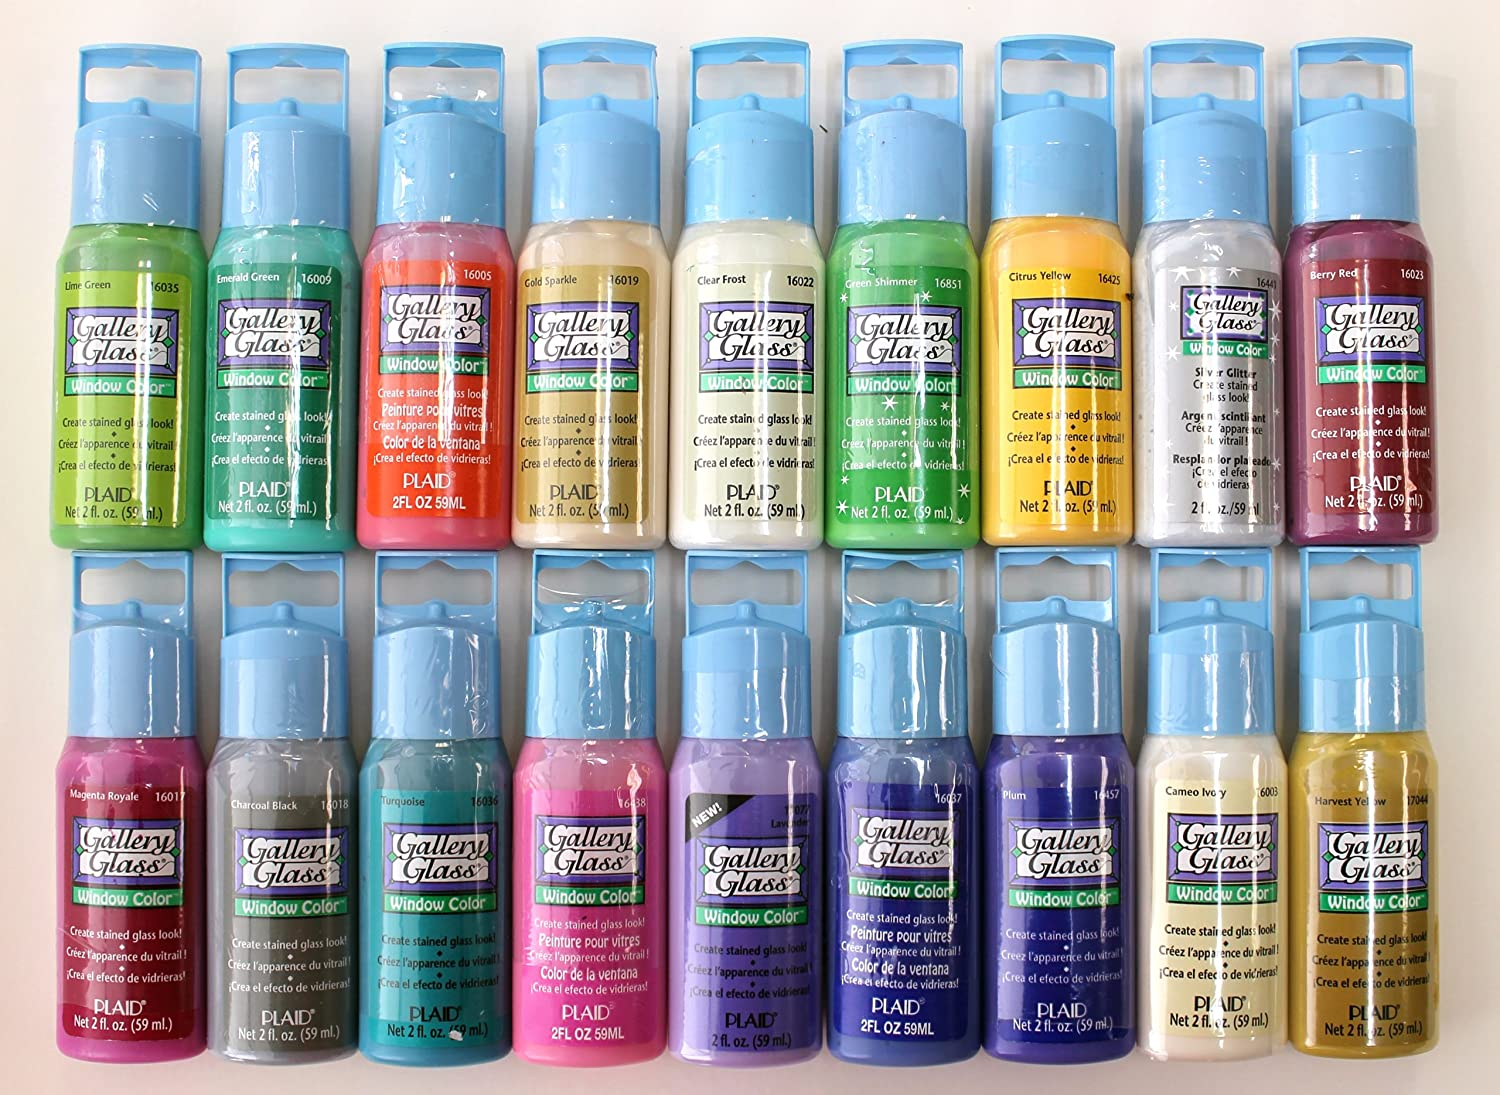 plaid gallery glass window color acrylic paint set 2